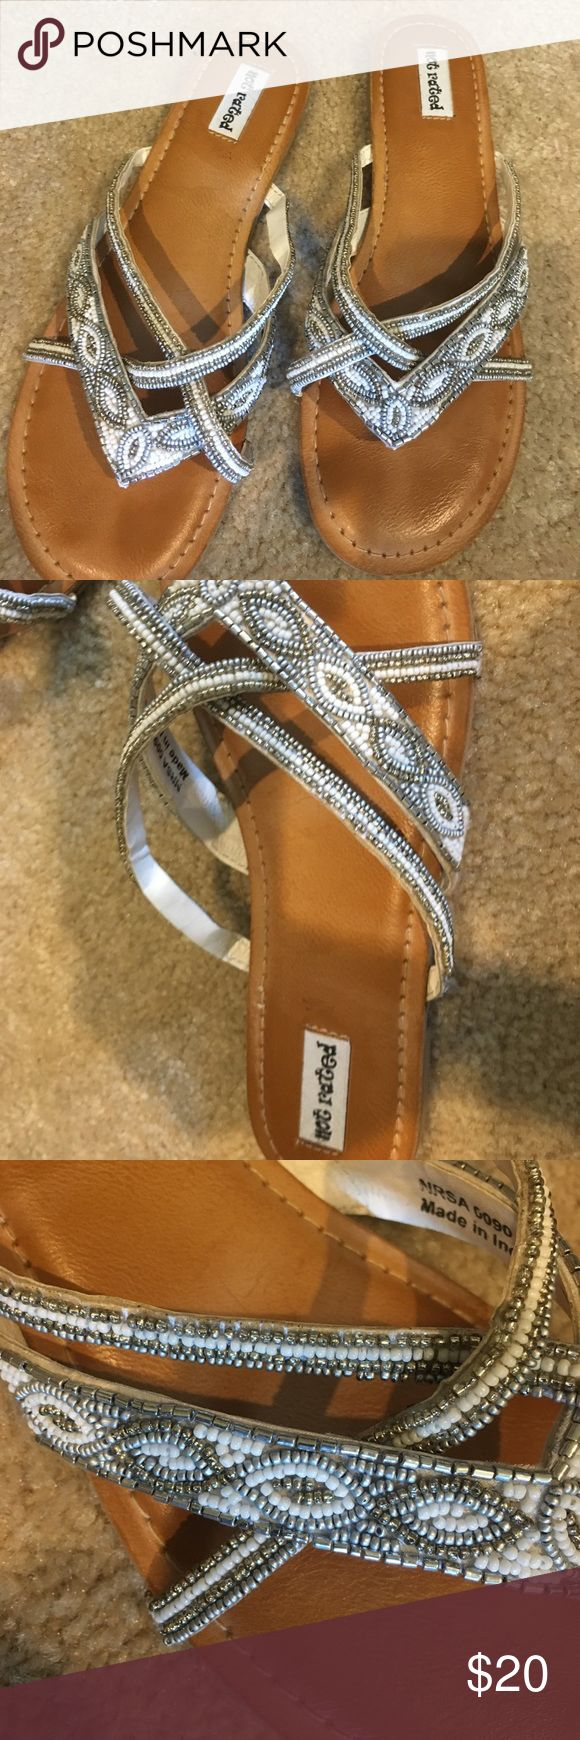 Not Rated size 7.5 Flip flop sandals Beaded Not Rated Fancy Flip Flop Sandals from Buckle.  Cream and Silver, Size 7.5 .  Gently worn no missing beads. Not Rated Shoes Sandals